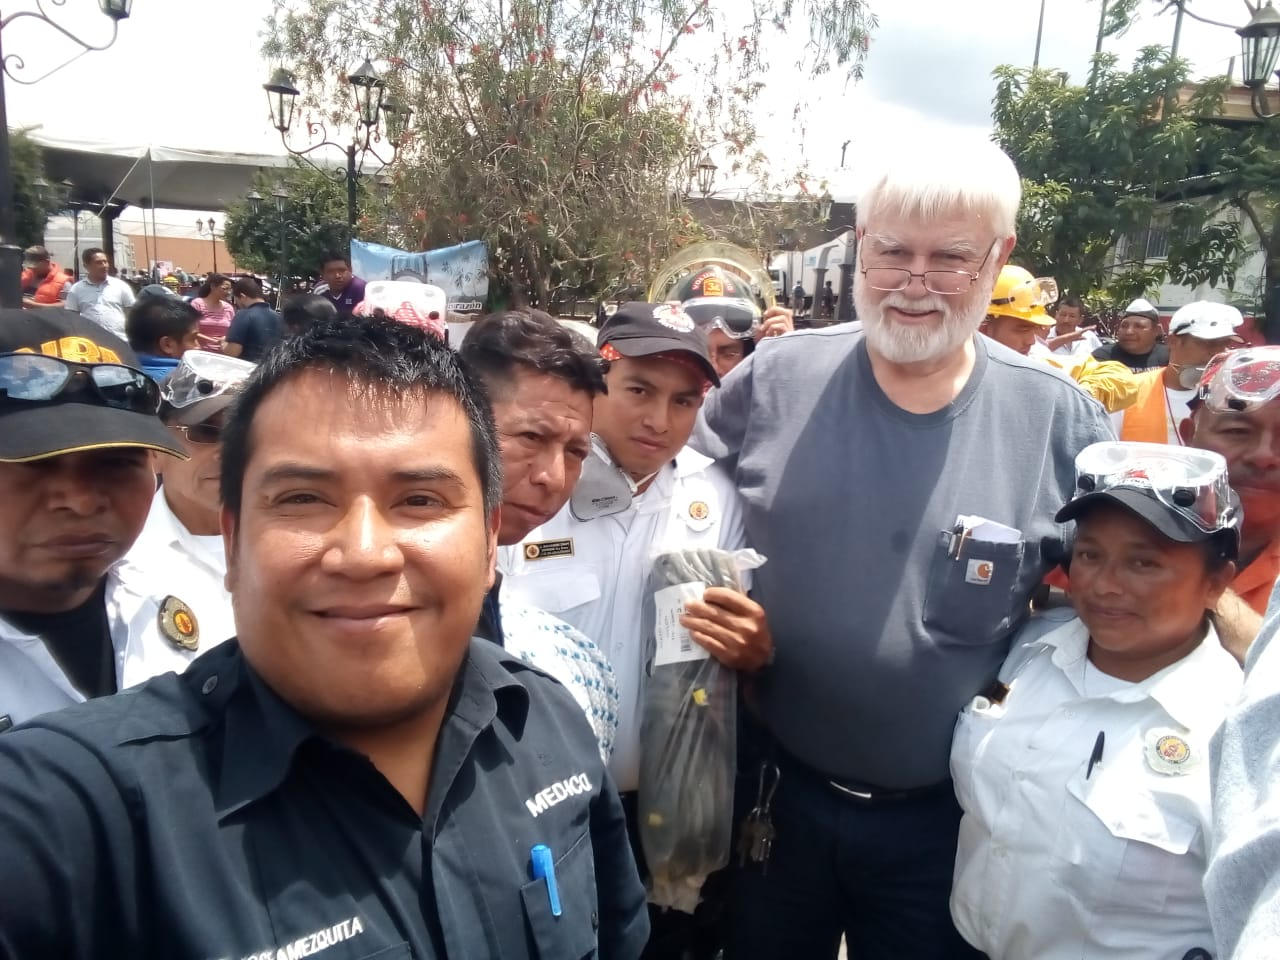 Doctors serving in disaster areas are happy when they have medicine and supplies they can use. You made sure Dr Amézquita got what he needed. You also supplied the 127th Company San Jose Pinula volunteer rescue squad, Dr Eric Estrada, and others. Thank you!